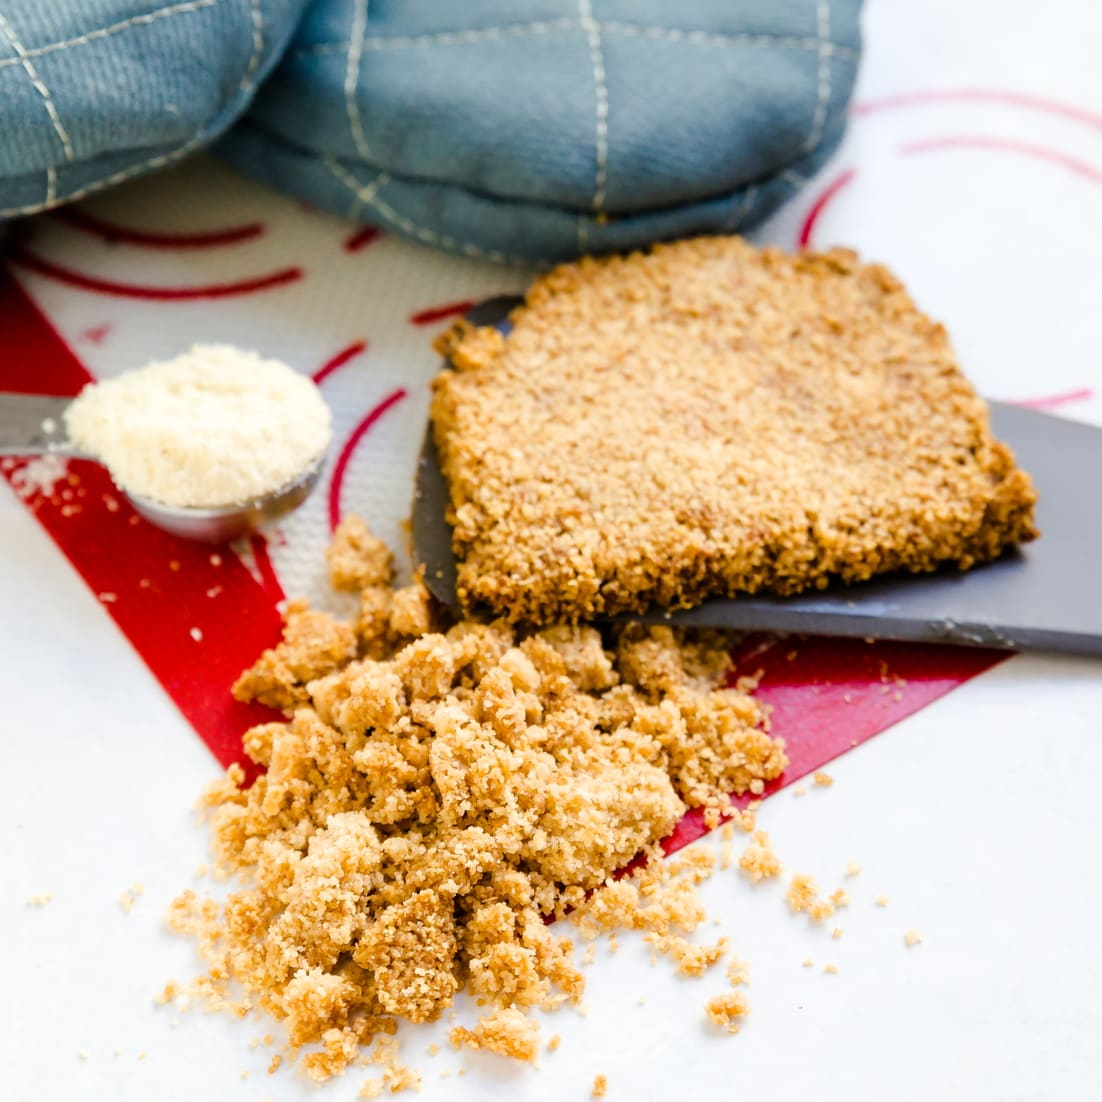 Keto cheese crumble crust on a silicon baking mat